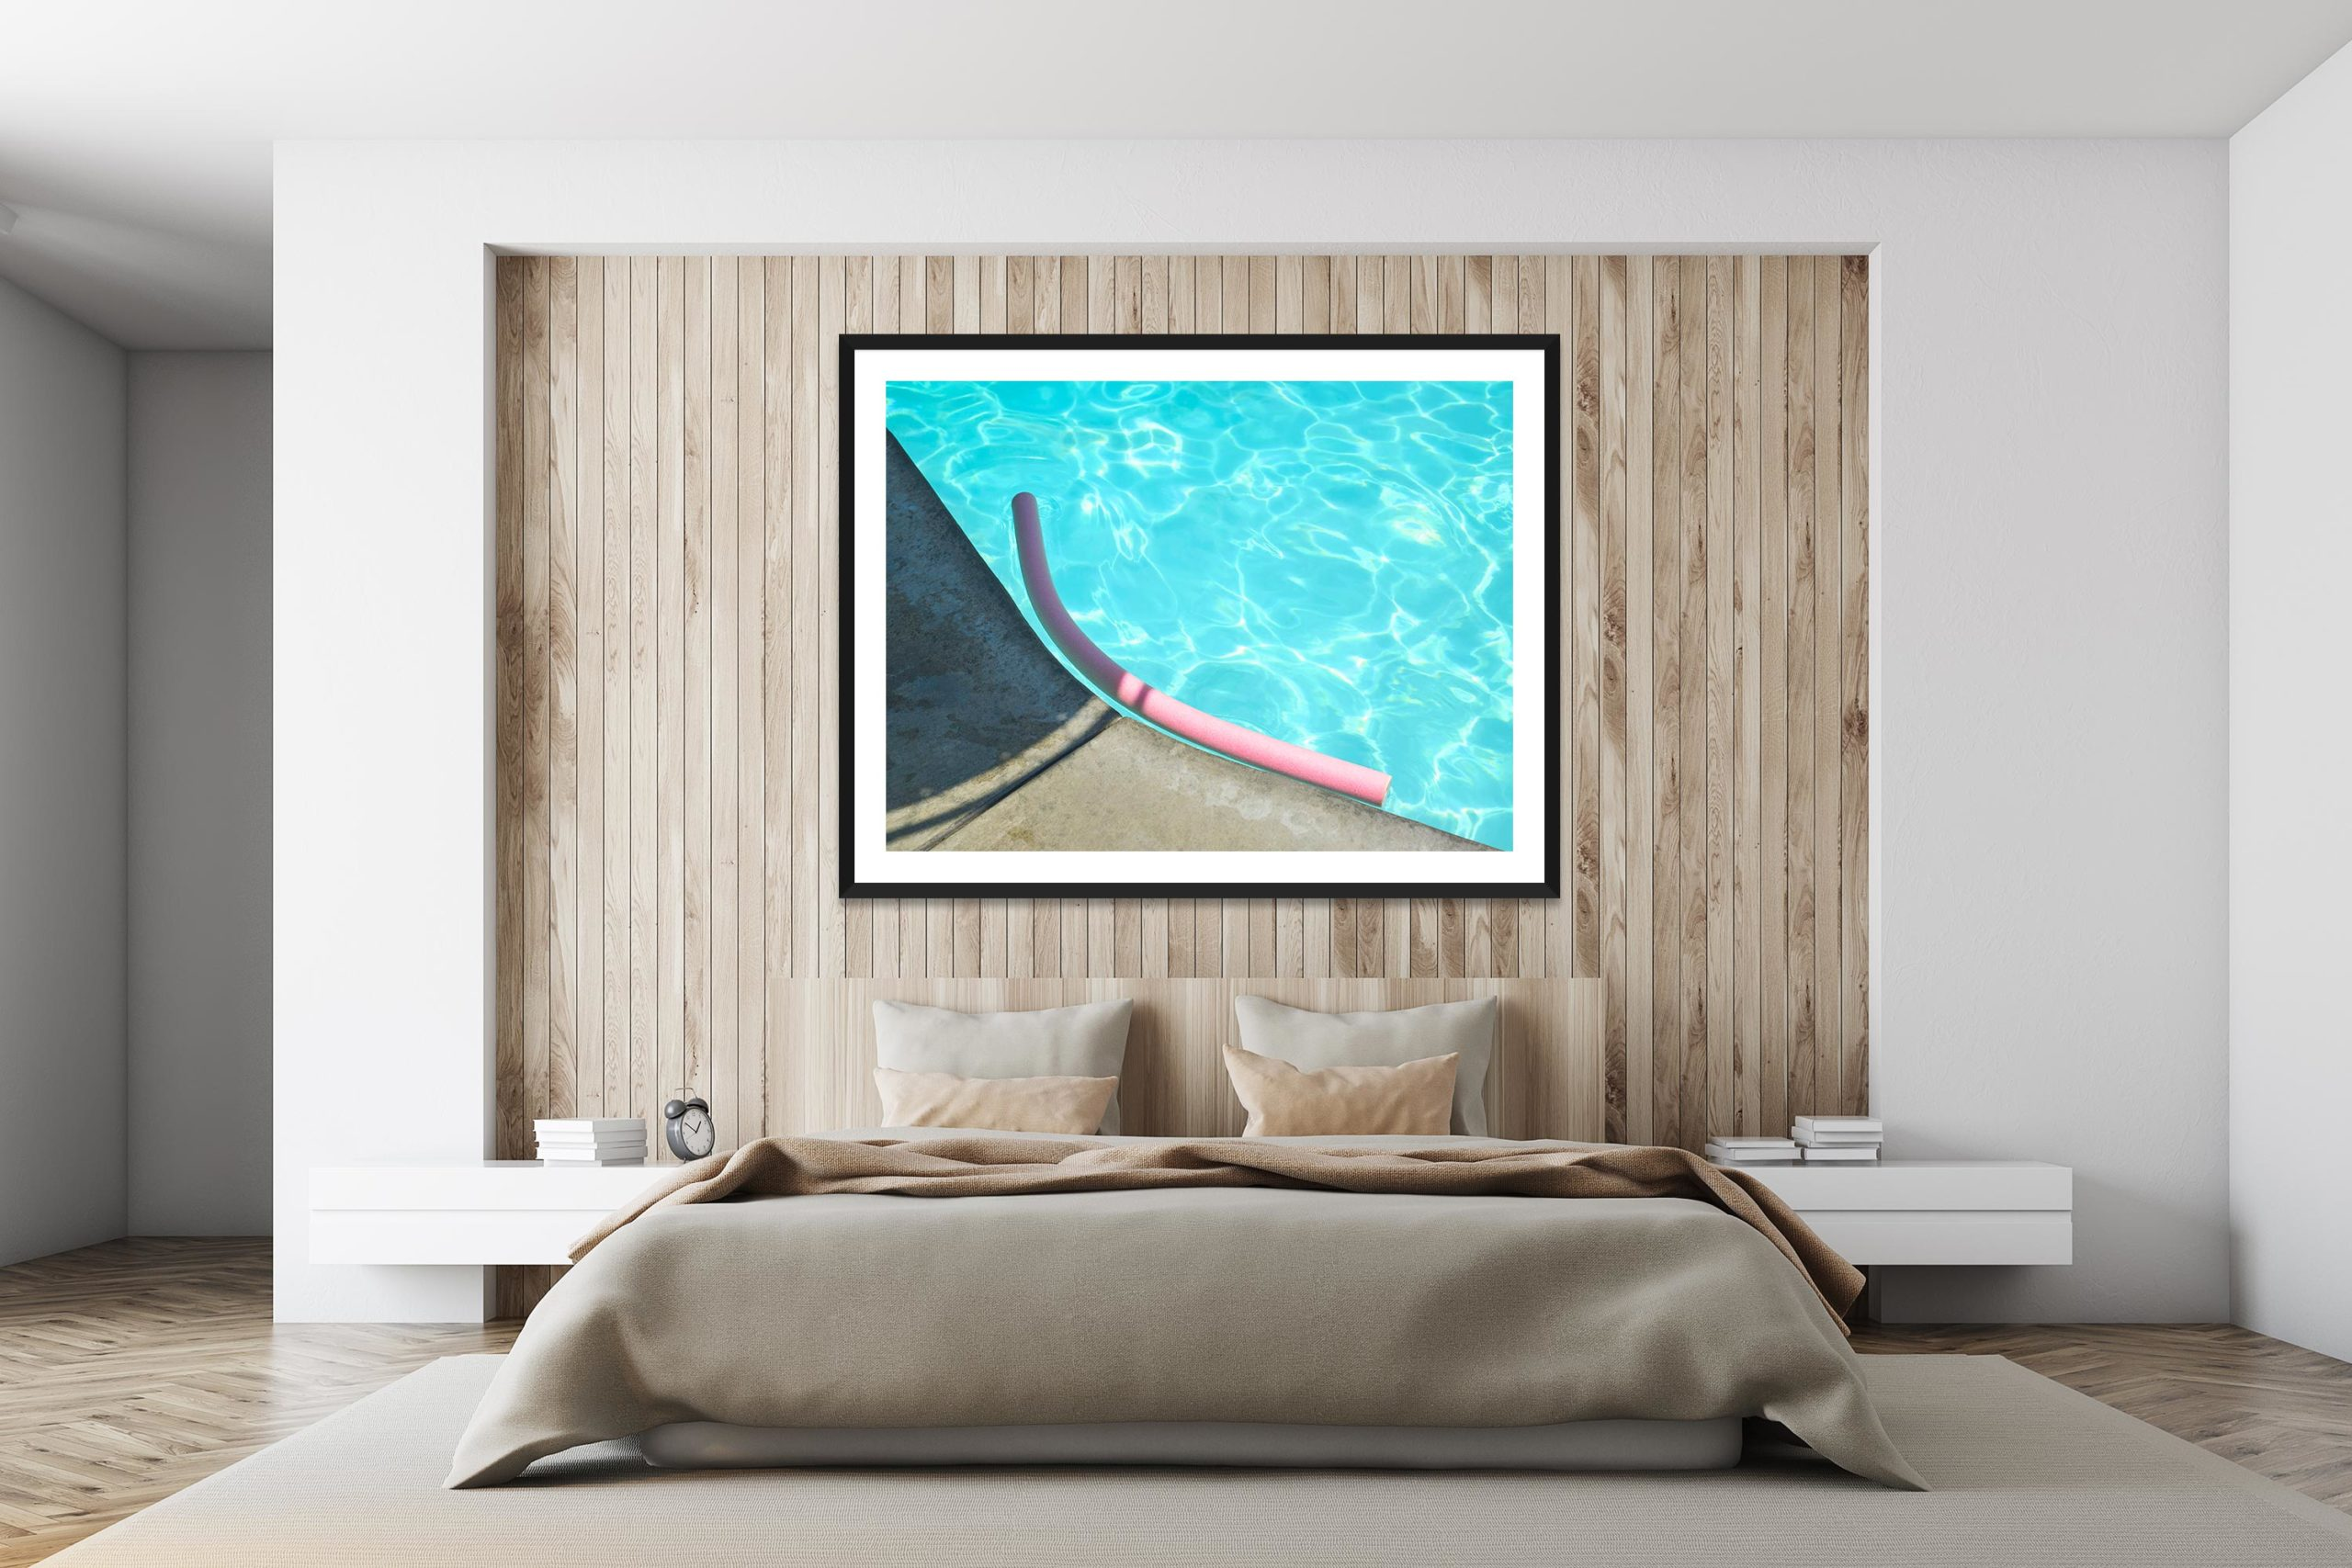 Noodle - Black Frame - I Heart Palm Springs Collection - Fine Art Photography by Toby Dixon